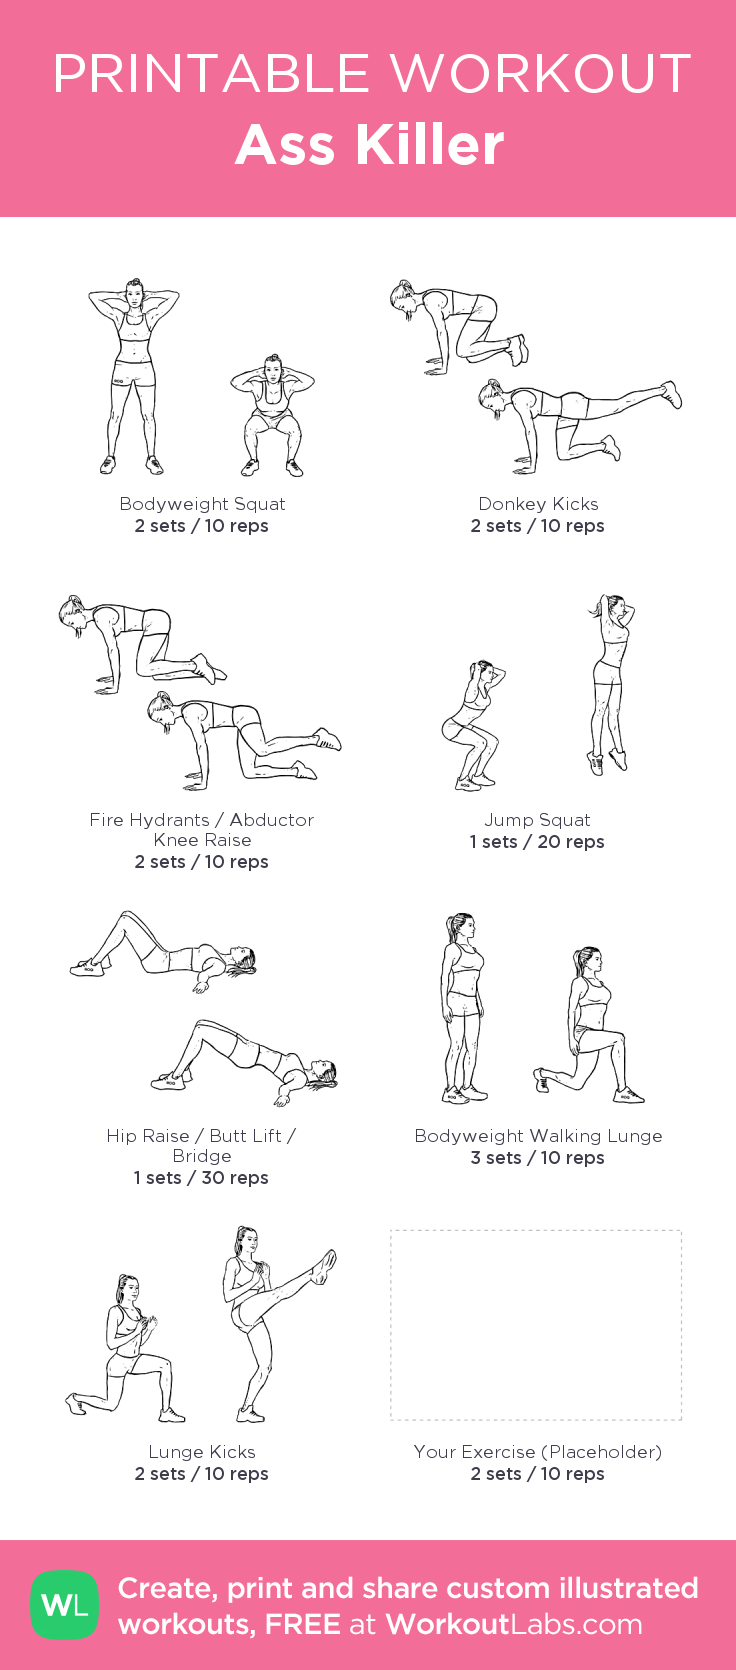 Pin On Exercices Imprimables